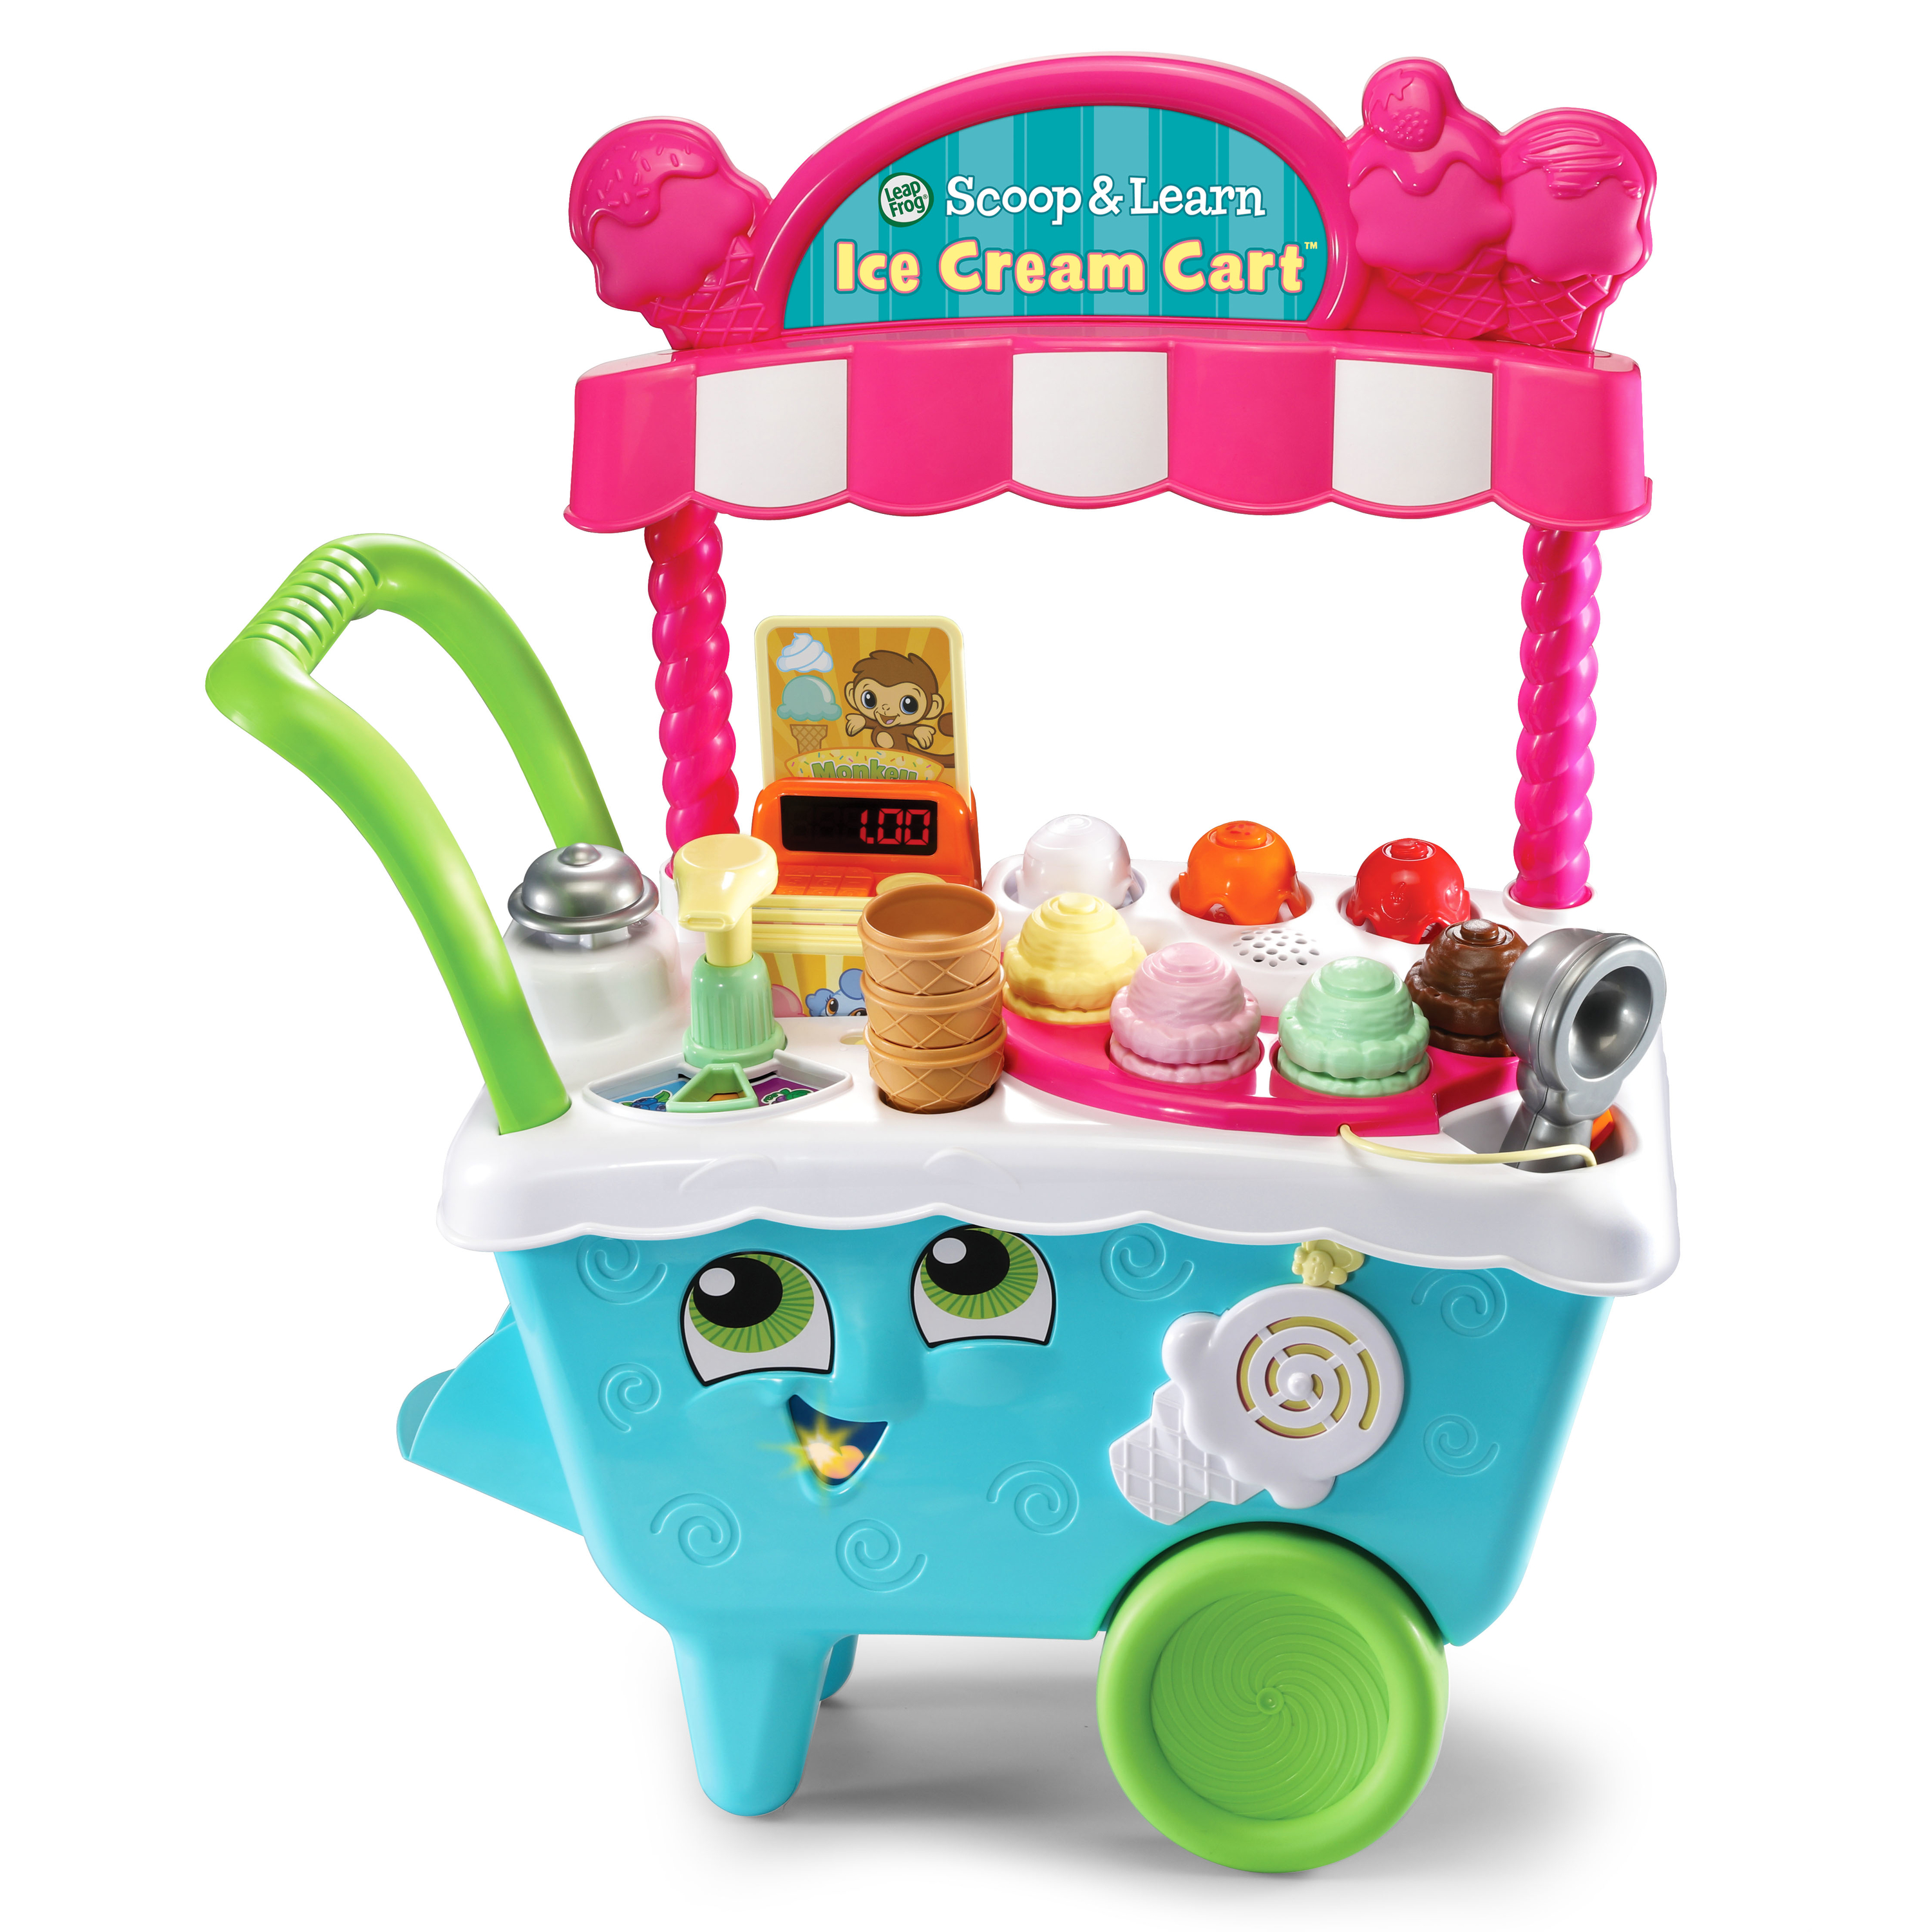 LeapFrog Scoop & Learn Ice Cream Cart by LeapFrog